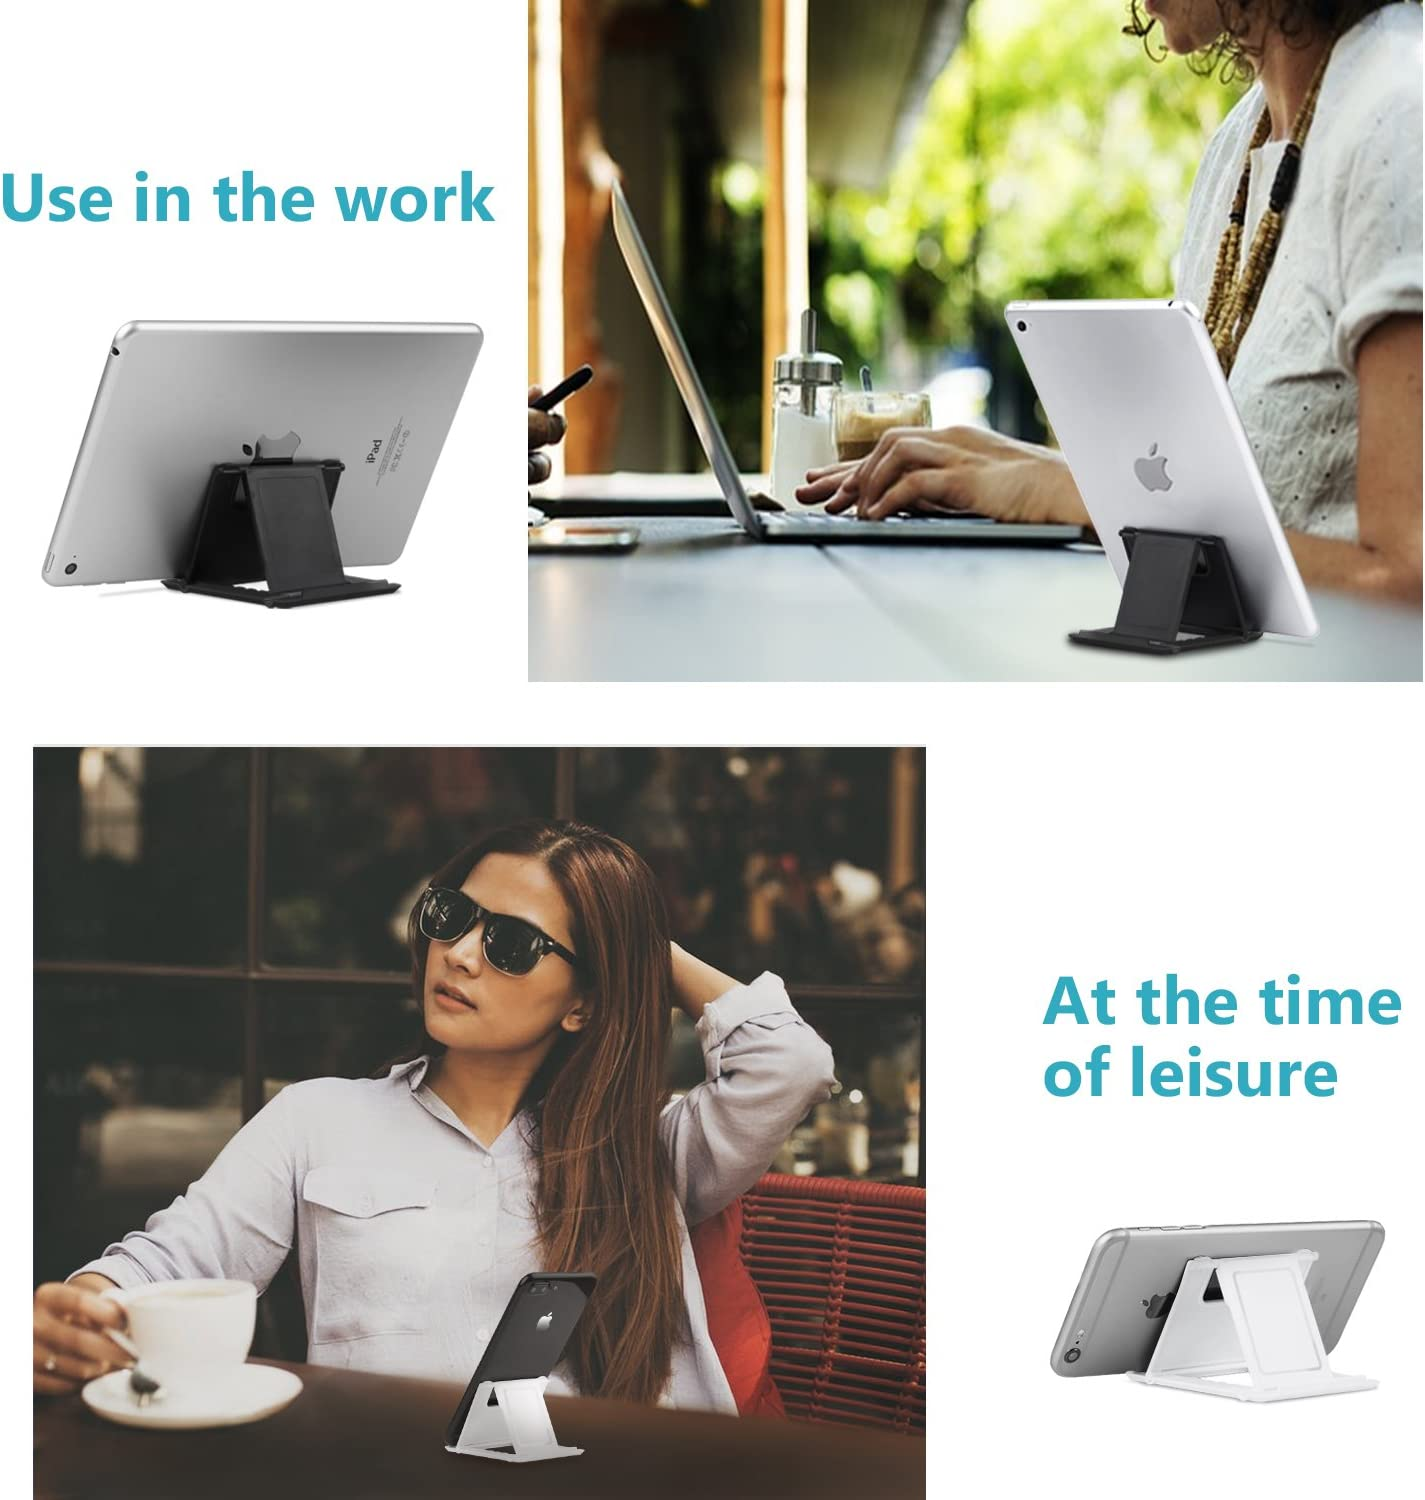 Fynix Adjustable Cell Phone Stand for Desk 2Black+2White Foldable Tablet Stand and Universal Mobile Phone Holder 4 Pack